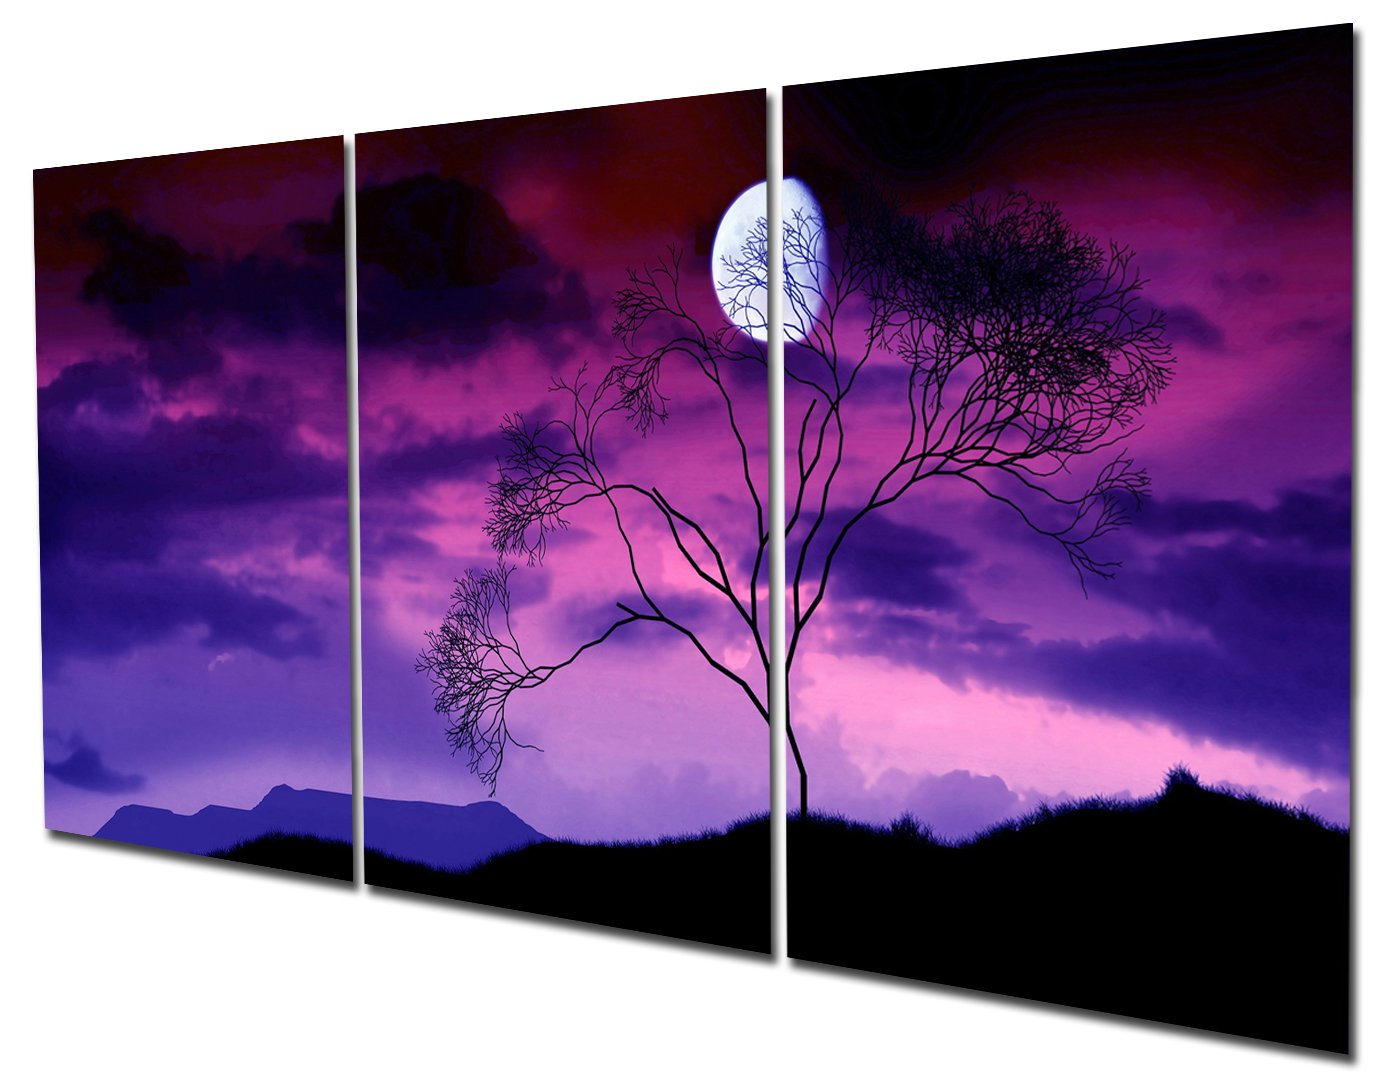 Gardenia Art - Moon on Trees At Night Canvas Wall Art Paintings Purple and Blue Abstract Landscape Artwork for Home and Office Decoration, 16X24'' Per Piece, Unframed